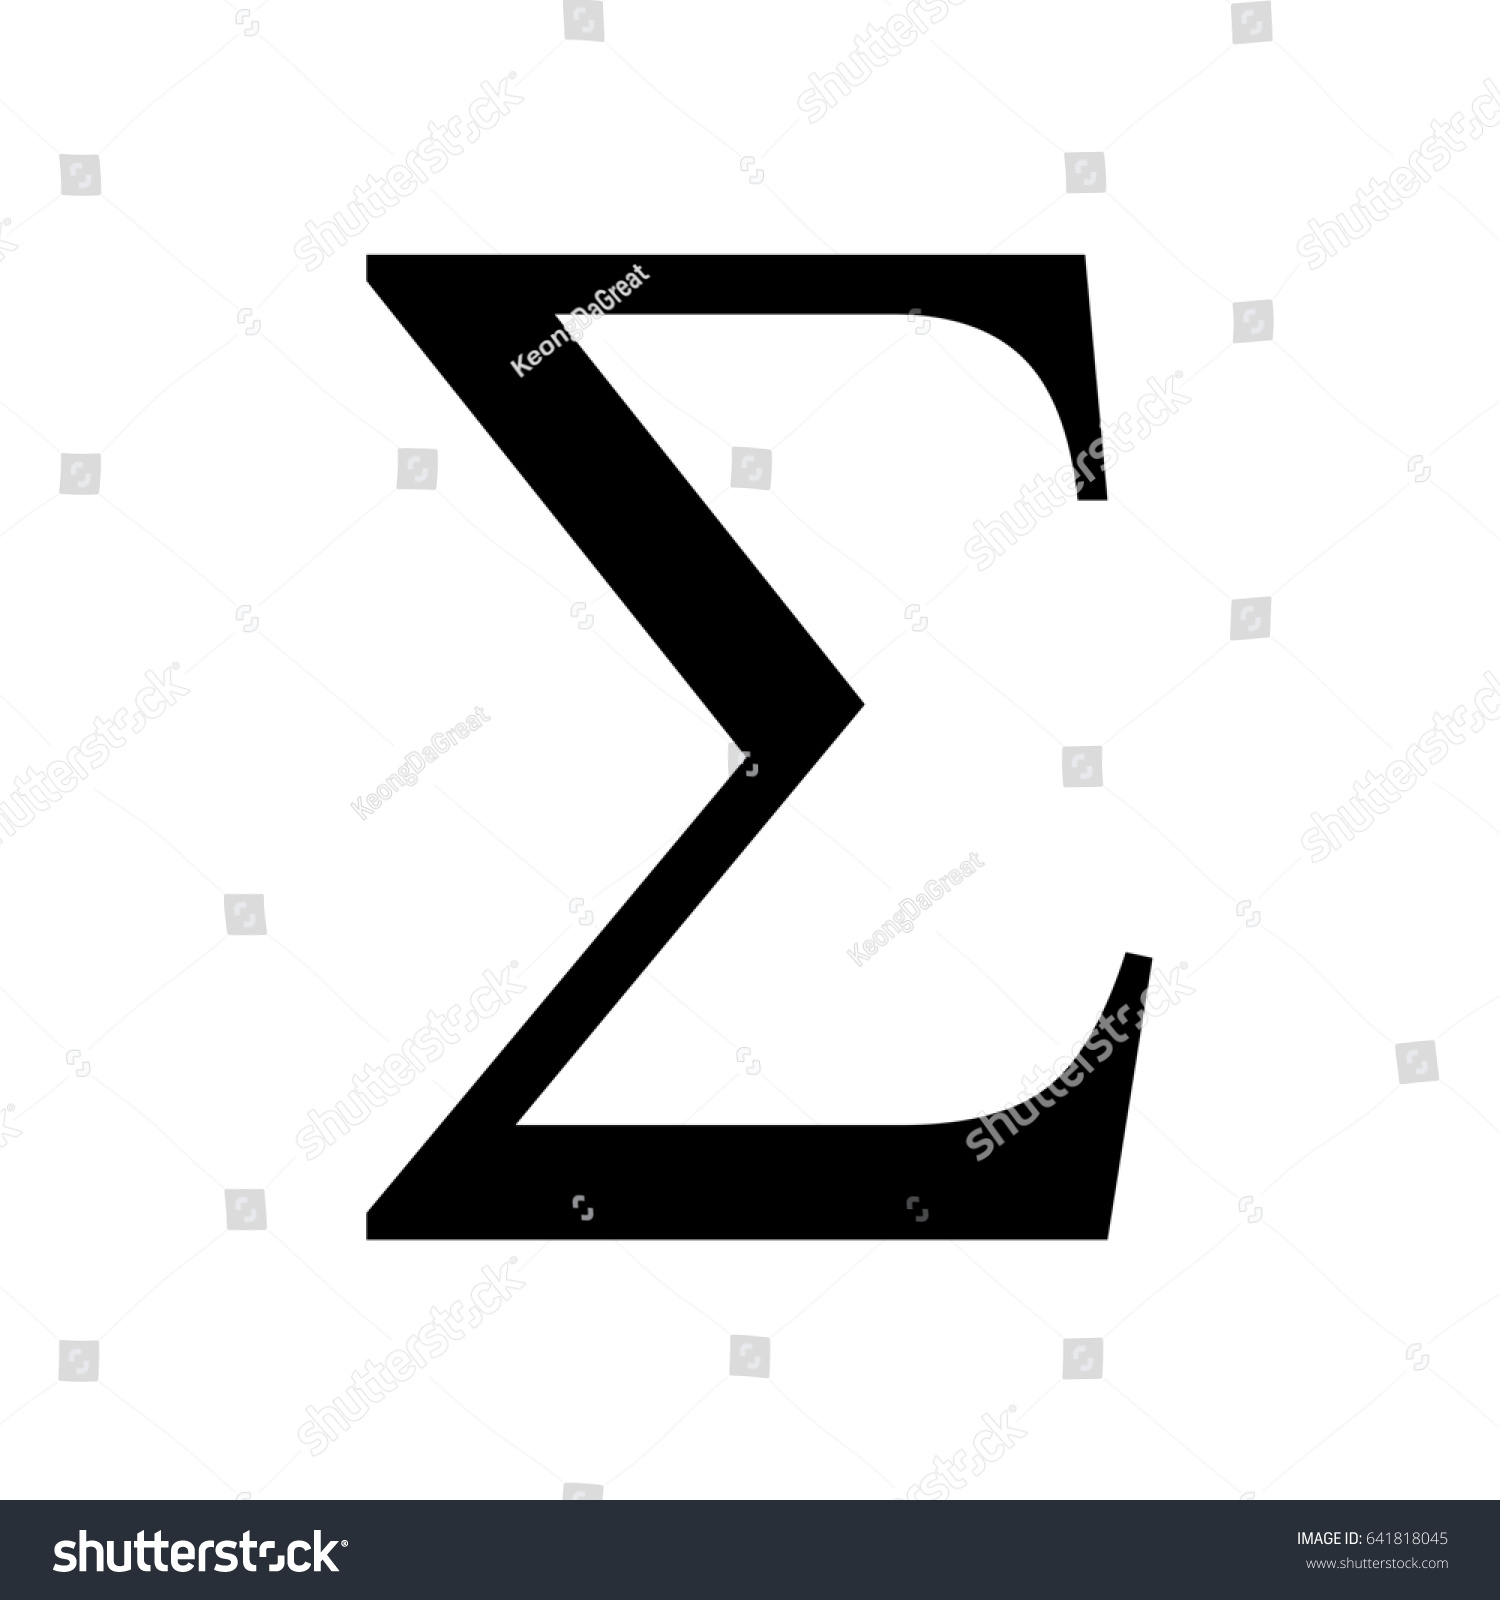 High resolution mathematics physic symbol icon stock illustration high resolution mathematics and physic symbol for icon and printing with isolated white background buycottarizona Image collections